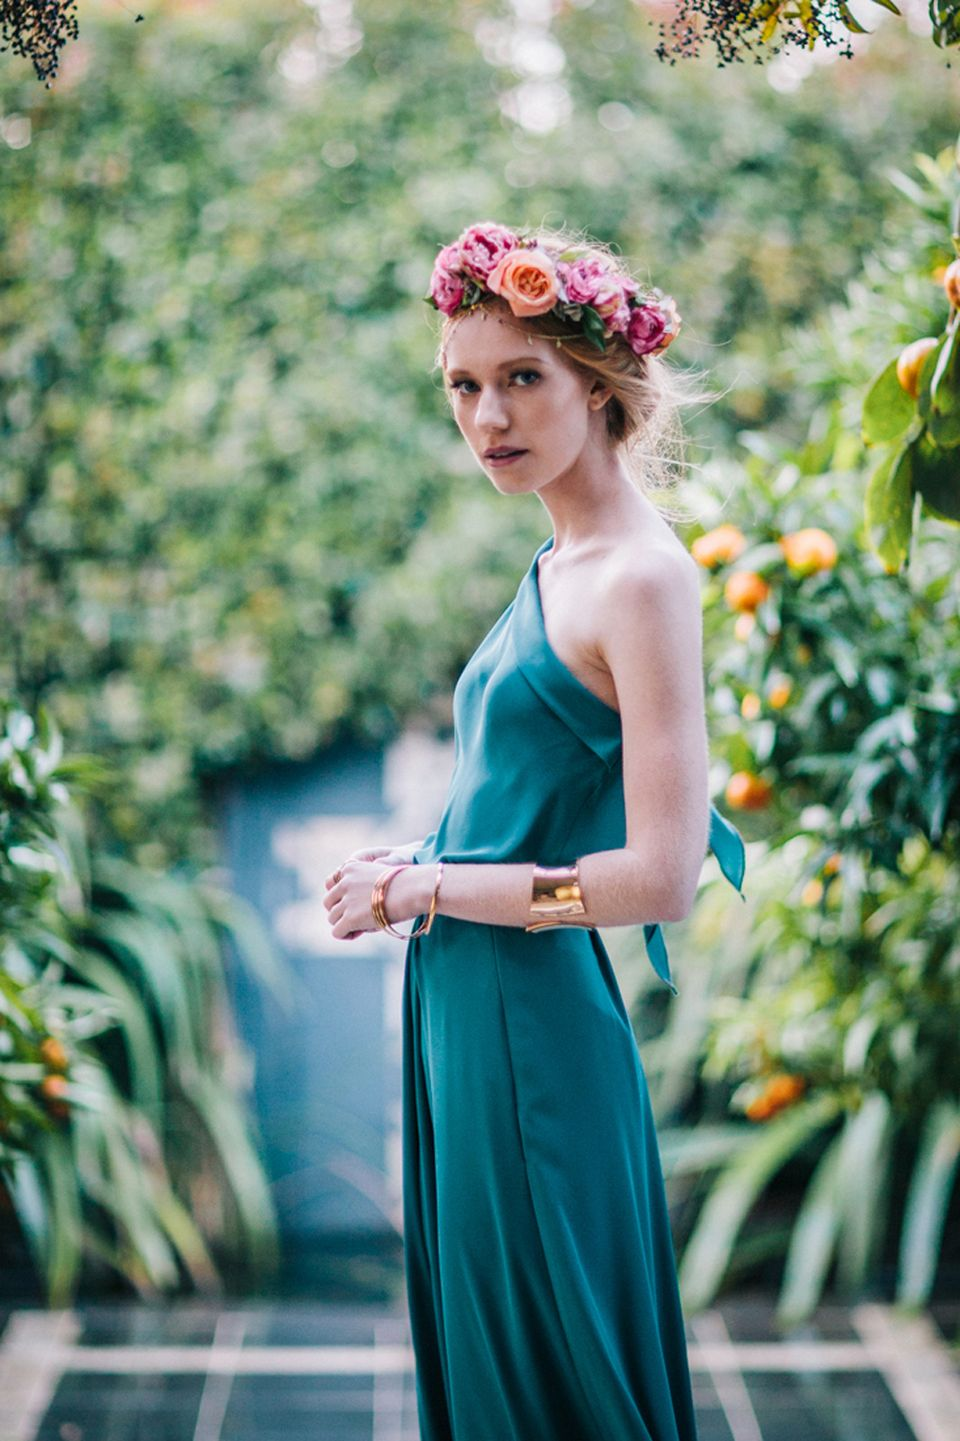 Victor teal asymmetric top and draped skirt bridesmaid dress unique quality bohemian bridesmaid dresses you will wear again made in auckland new zealand ombrellifo Gallery